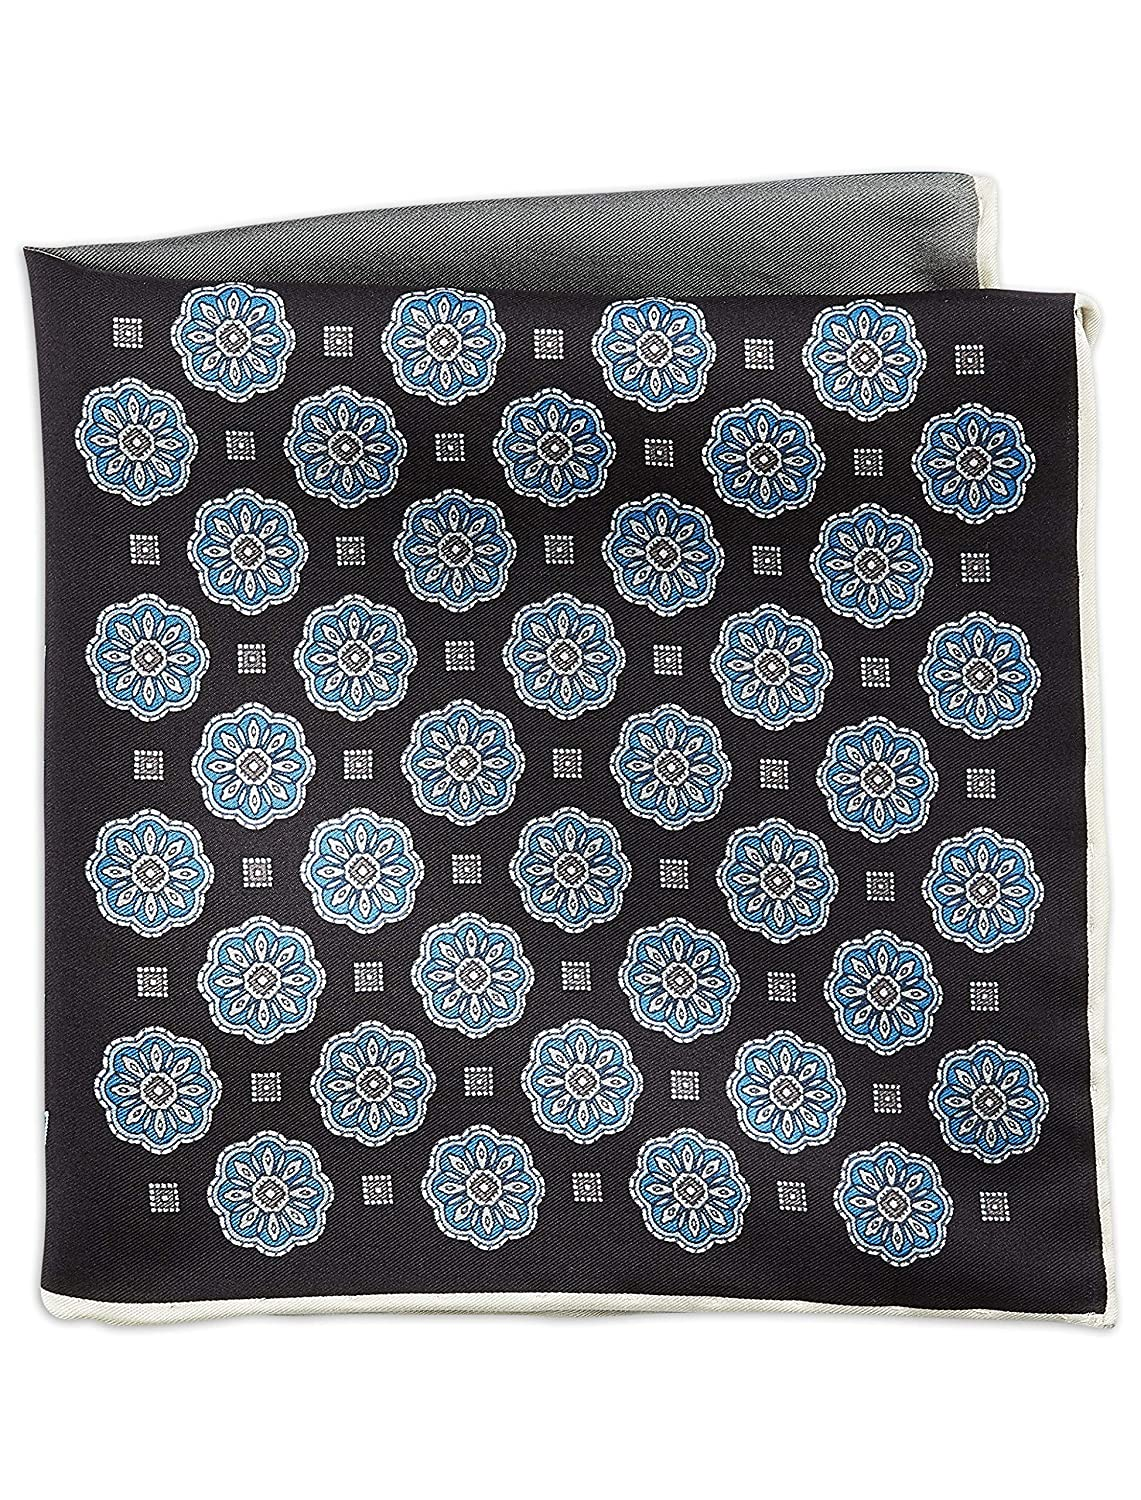 Rochester by DXL Big and Tall Designed in Italy Medallion Pocket Square